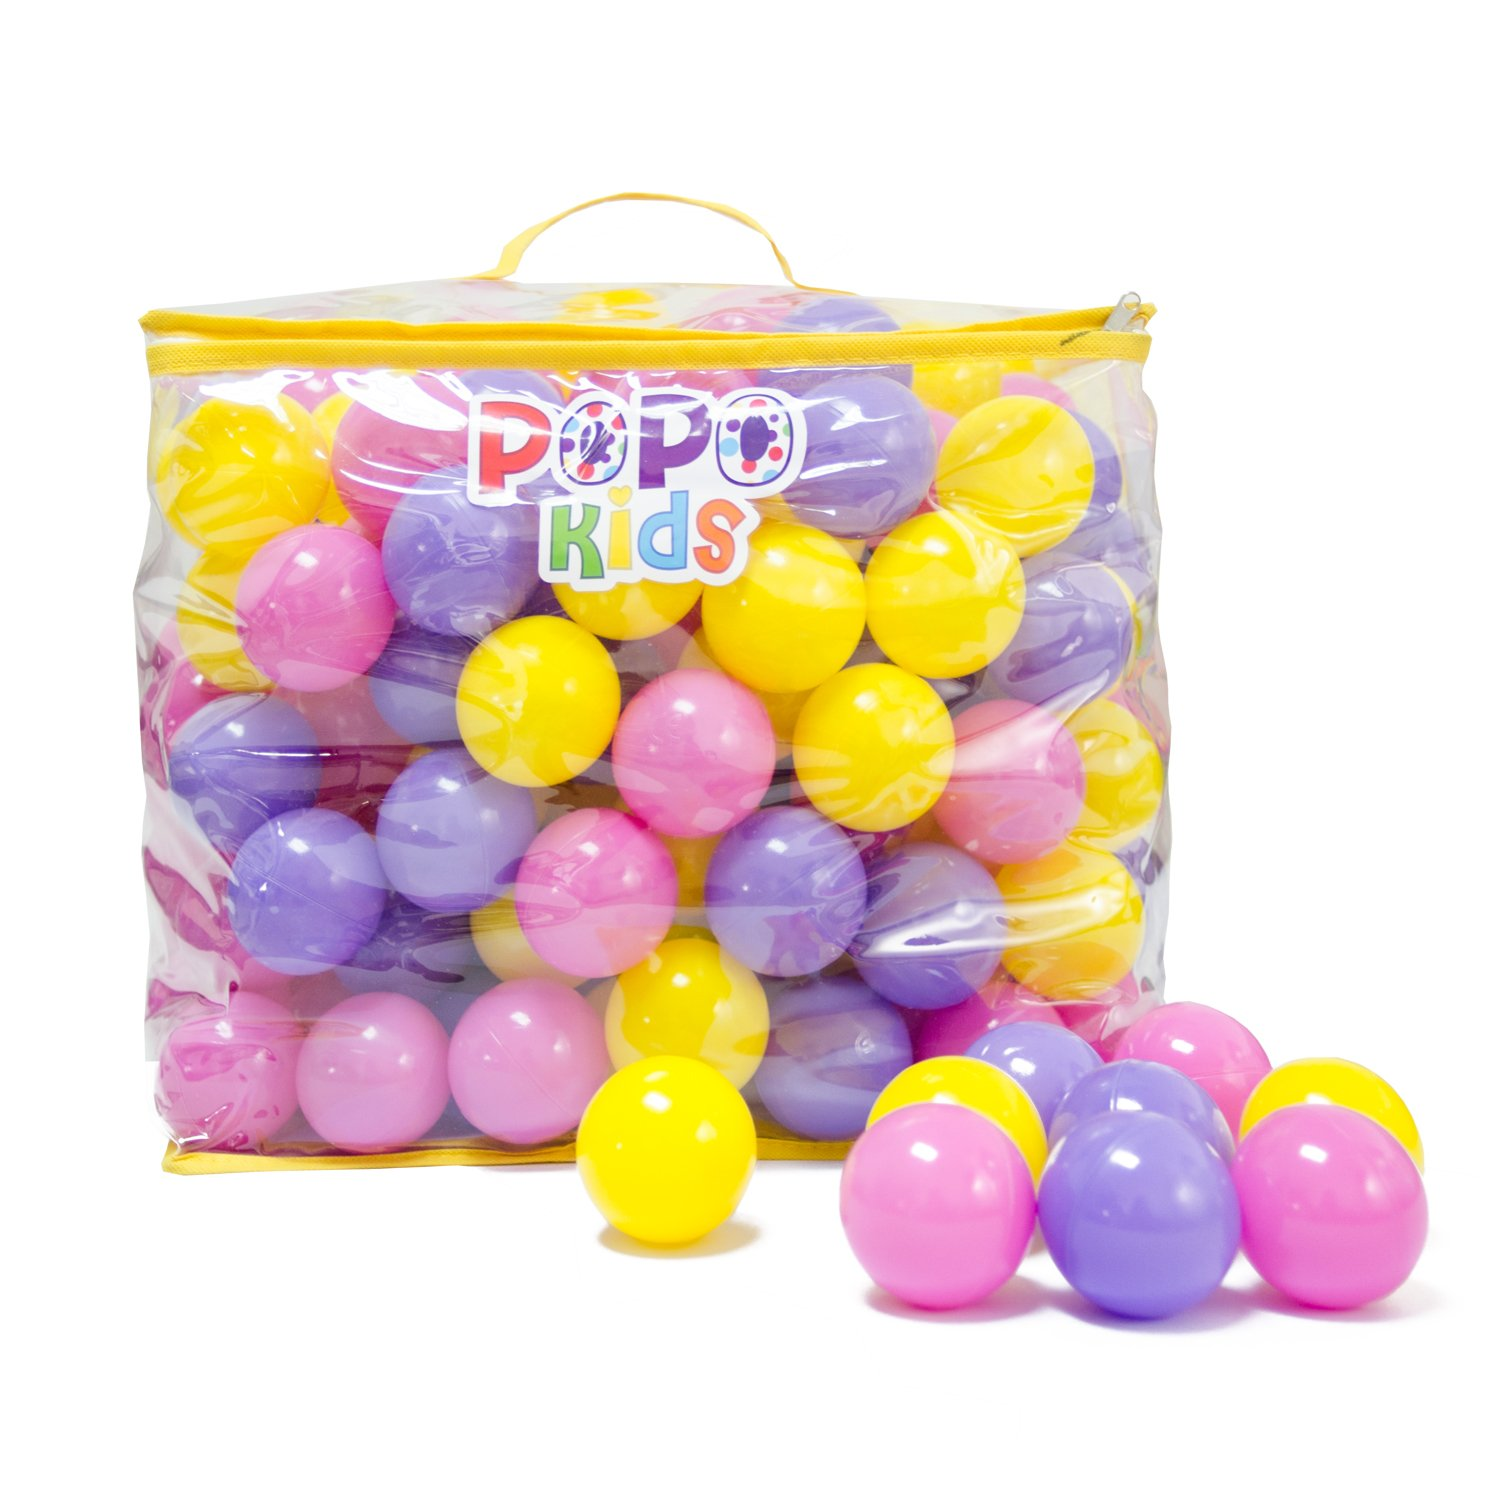 PoPo Kids Pack of 200 Plastic Play Balls, Phthalate Free BPA Free Crush Proof, with Durable Storage Zipper Bag (Princess)